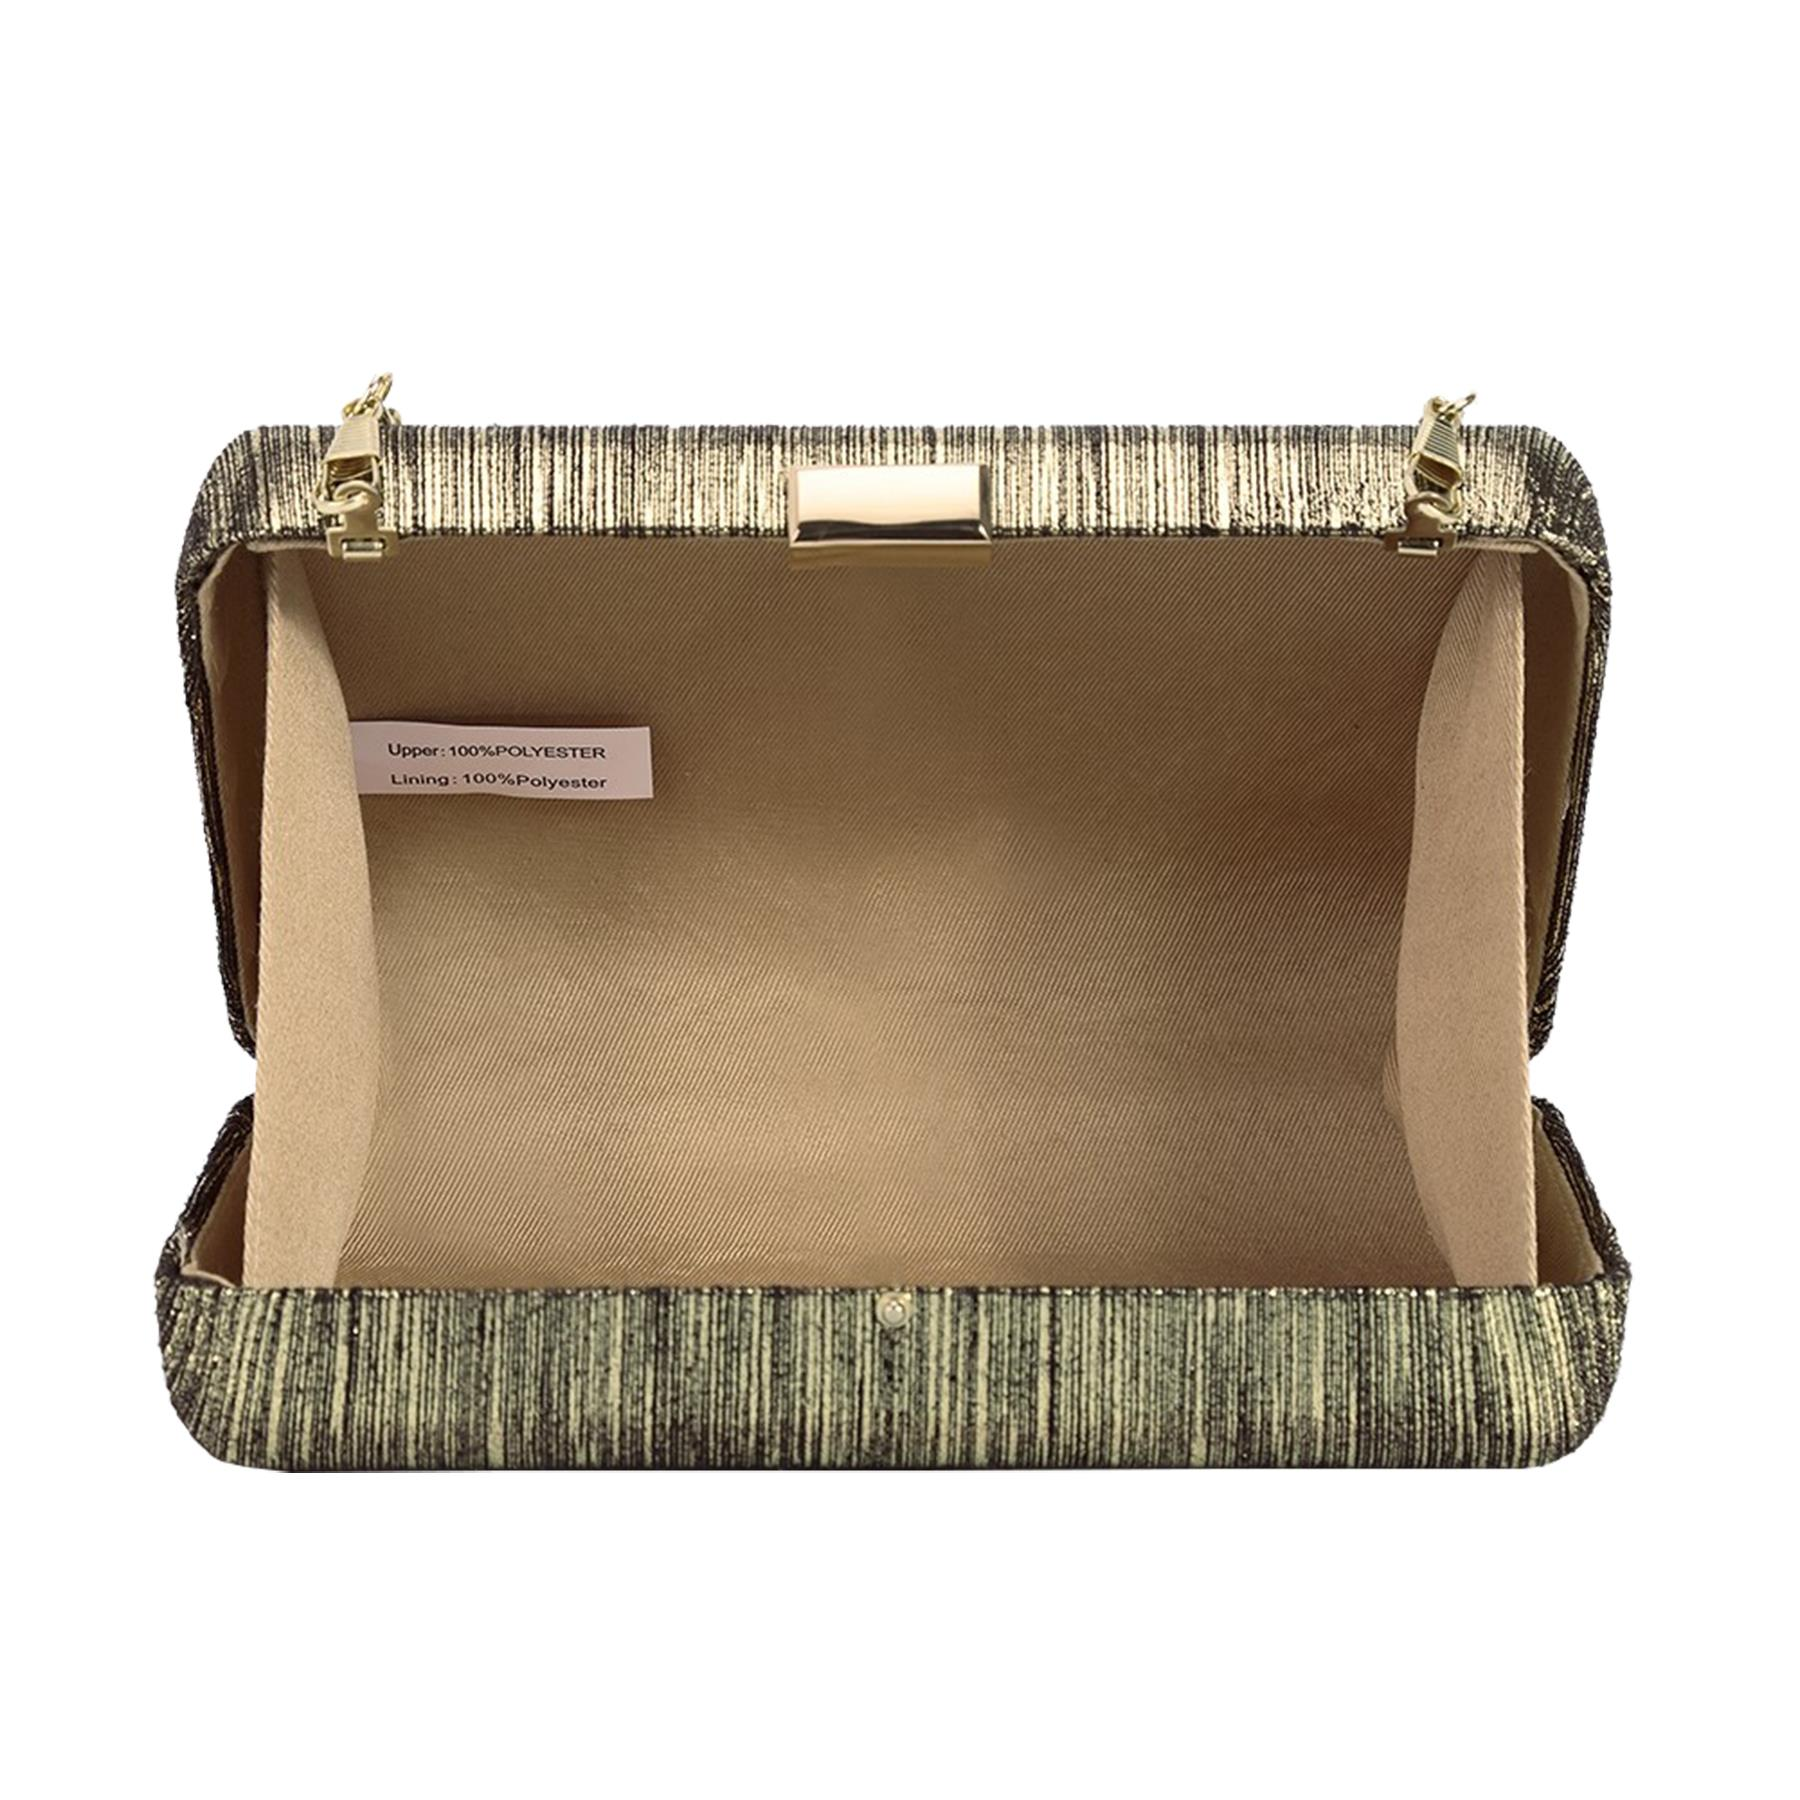 New-Ladies-Hard-Compact-Metallic-Effect-Faux-Leather-Party-Clutch-Bag thumbnail 4